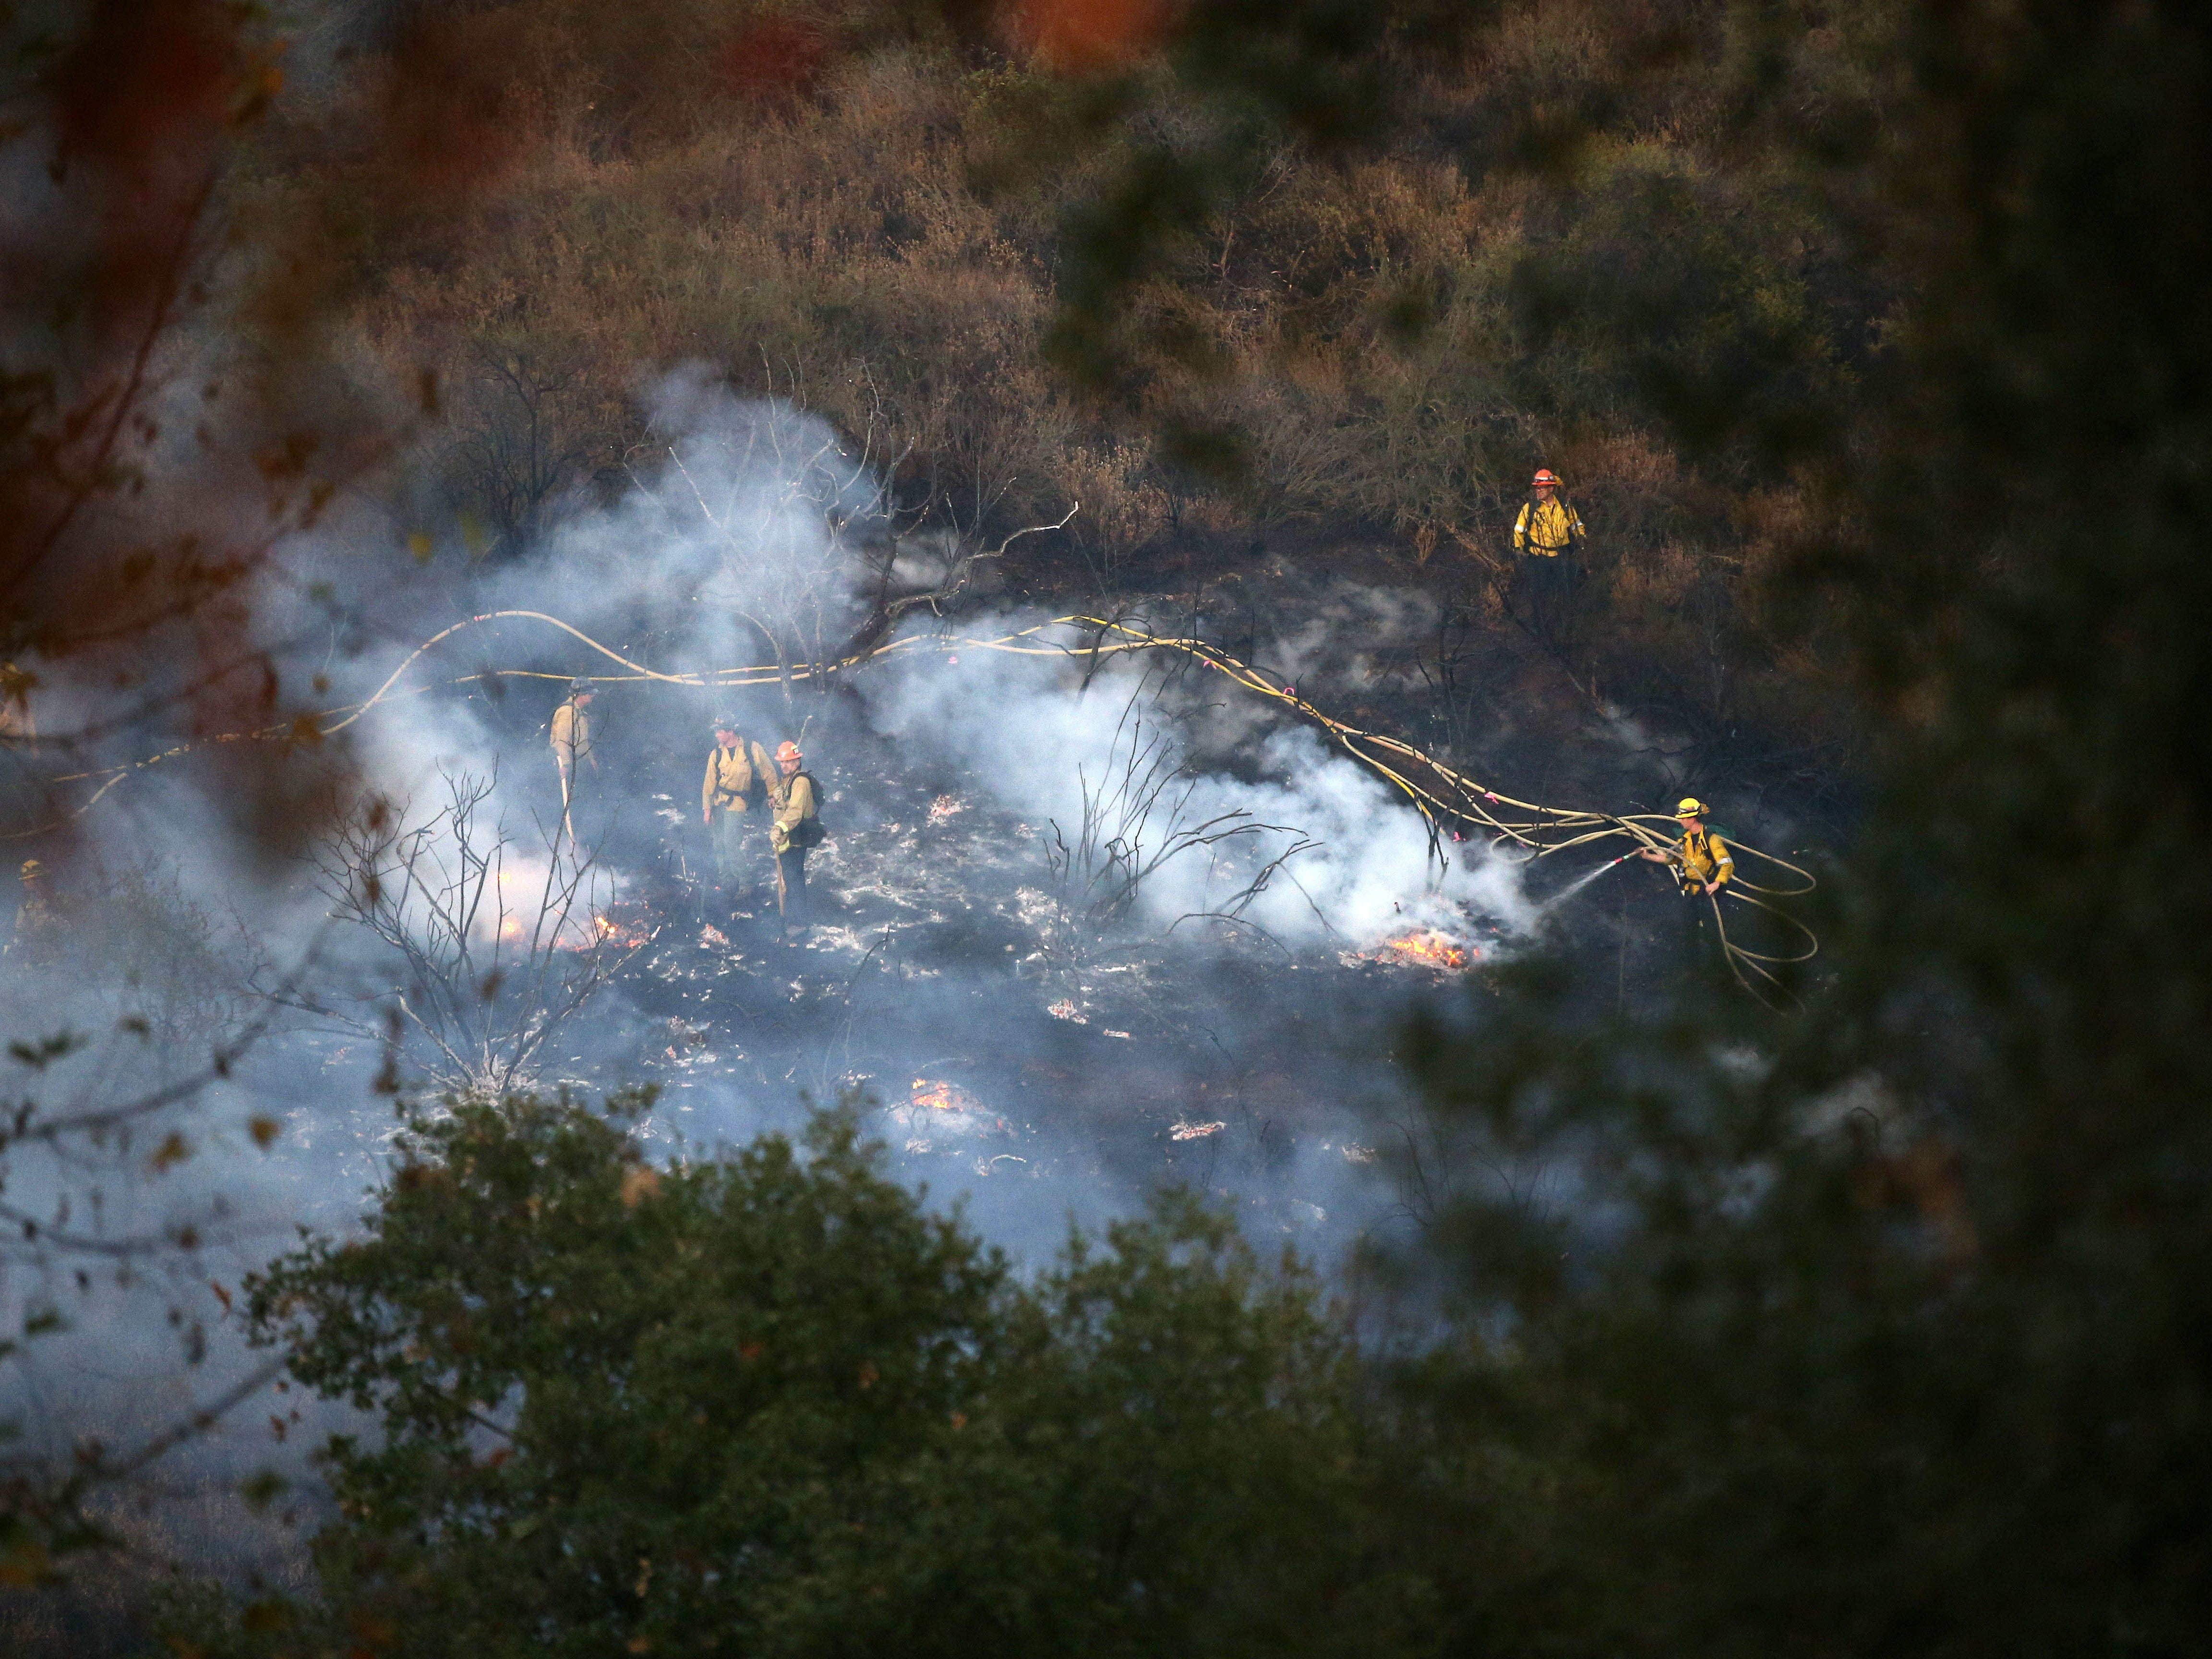 Firefighters from Glendale, Calif. battle flames from the Woolsey Fire on Nov. 11, 2018, in Westlake Village, Calif.